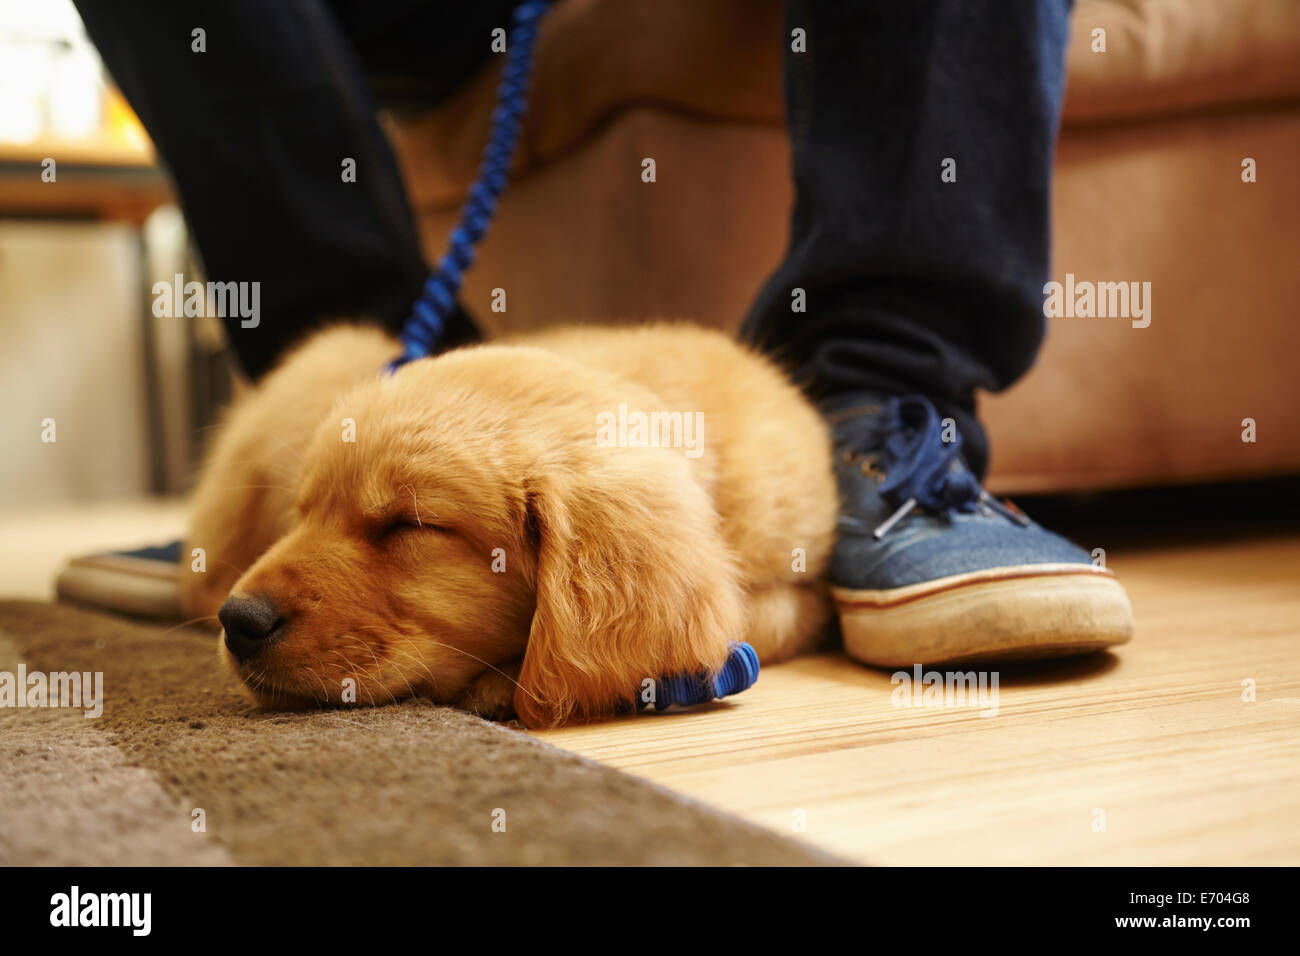 Labrador puppy asleep at feet - Stock Image